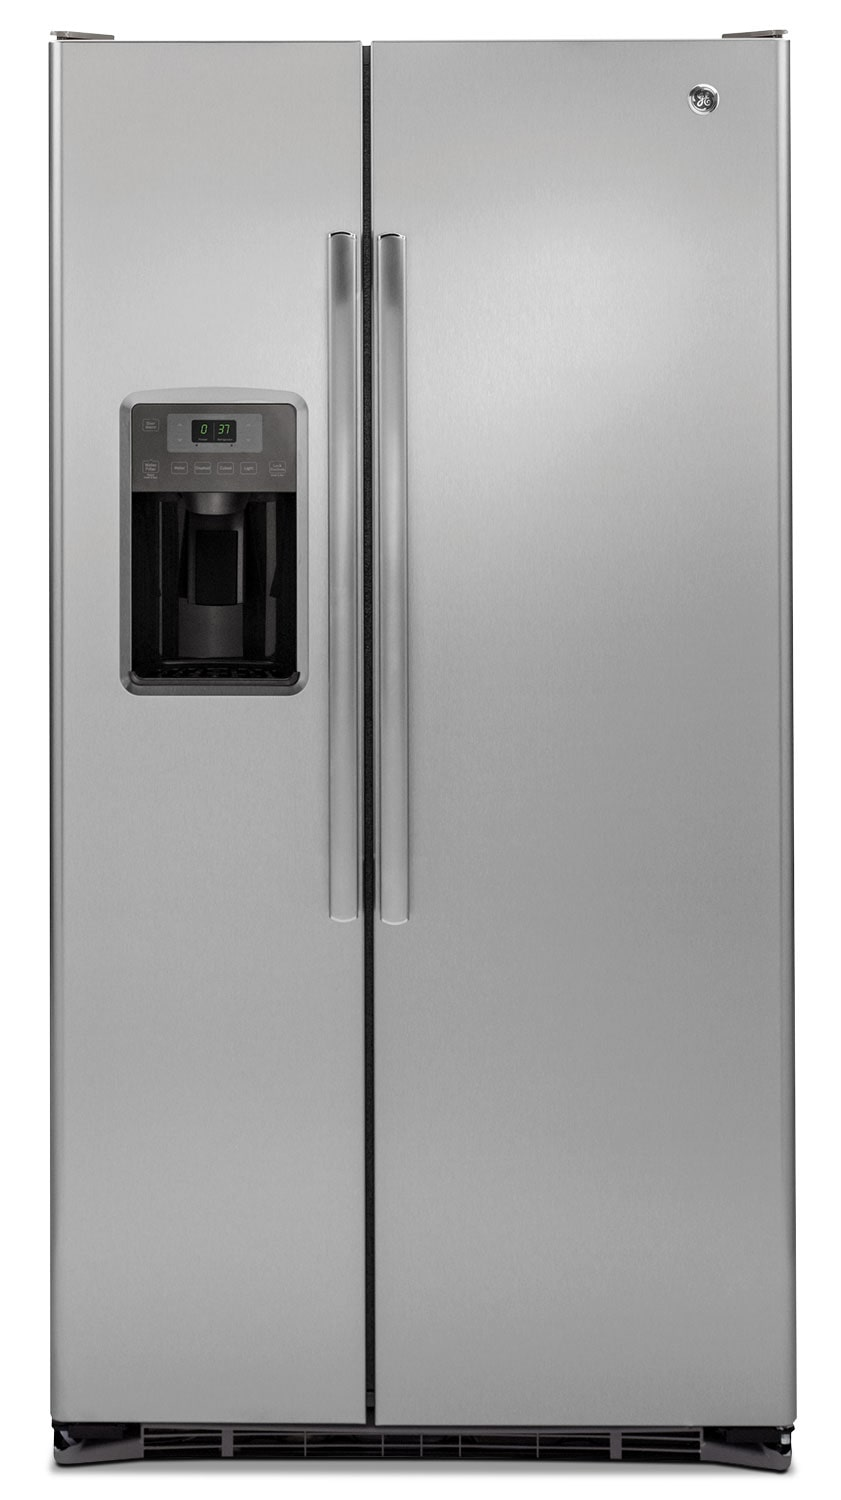 Refrigerators and Freezers - GE 21.9 Cu. Ft. Counter-Depth Side-by-Side Refrigerator – GZS22DSJSS